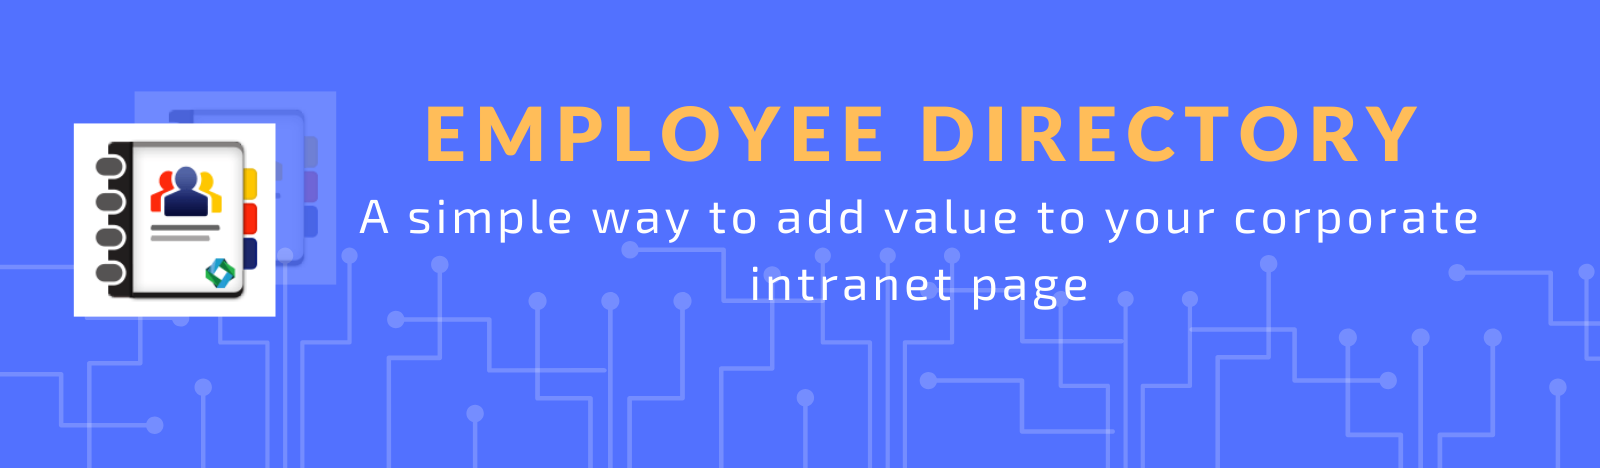 Employee Directory- A simple way to add value to your corporate intranet page